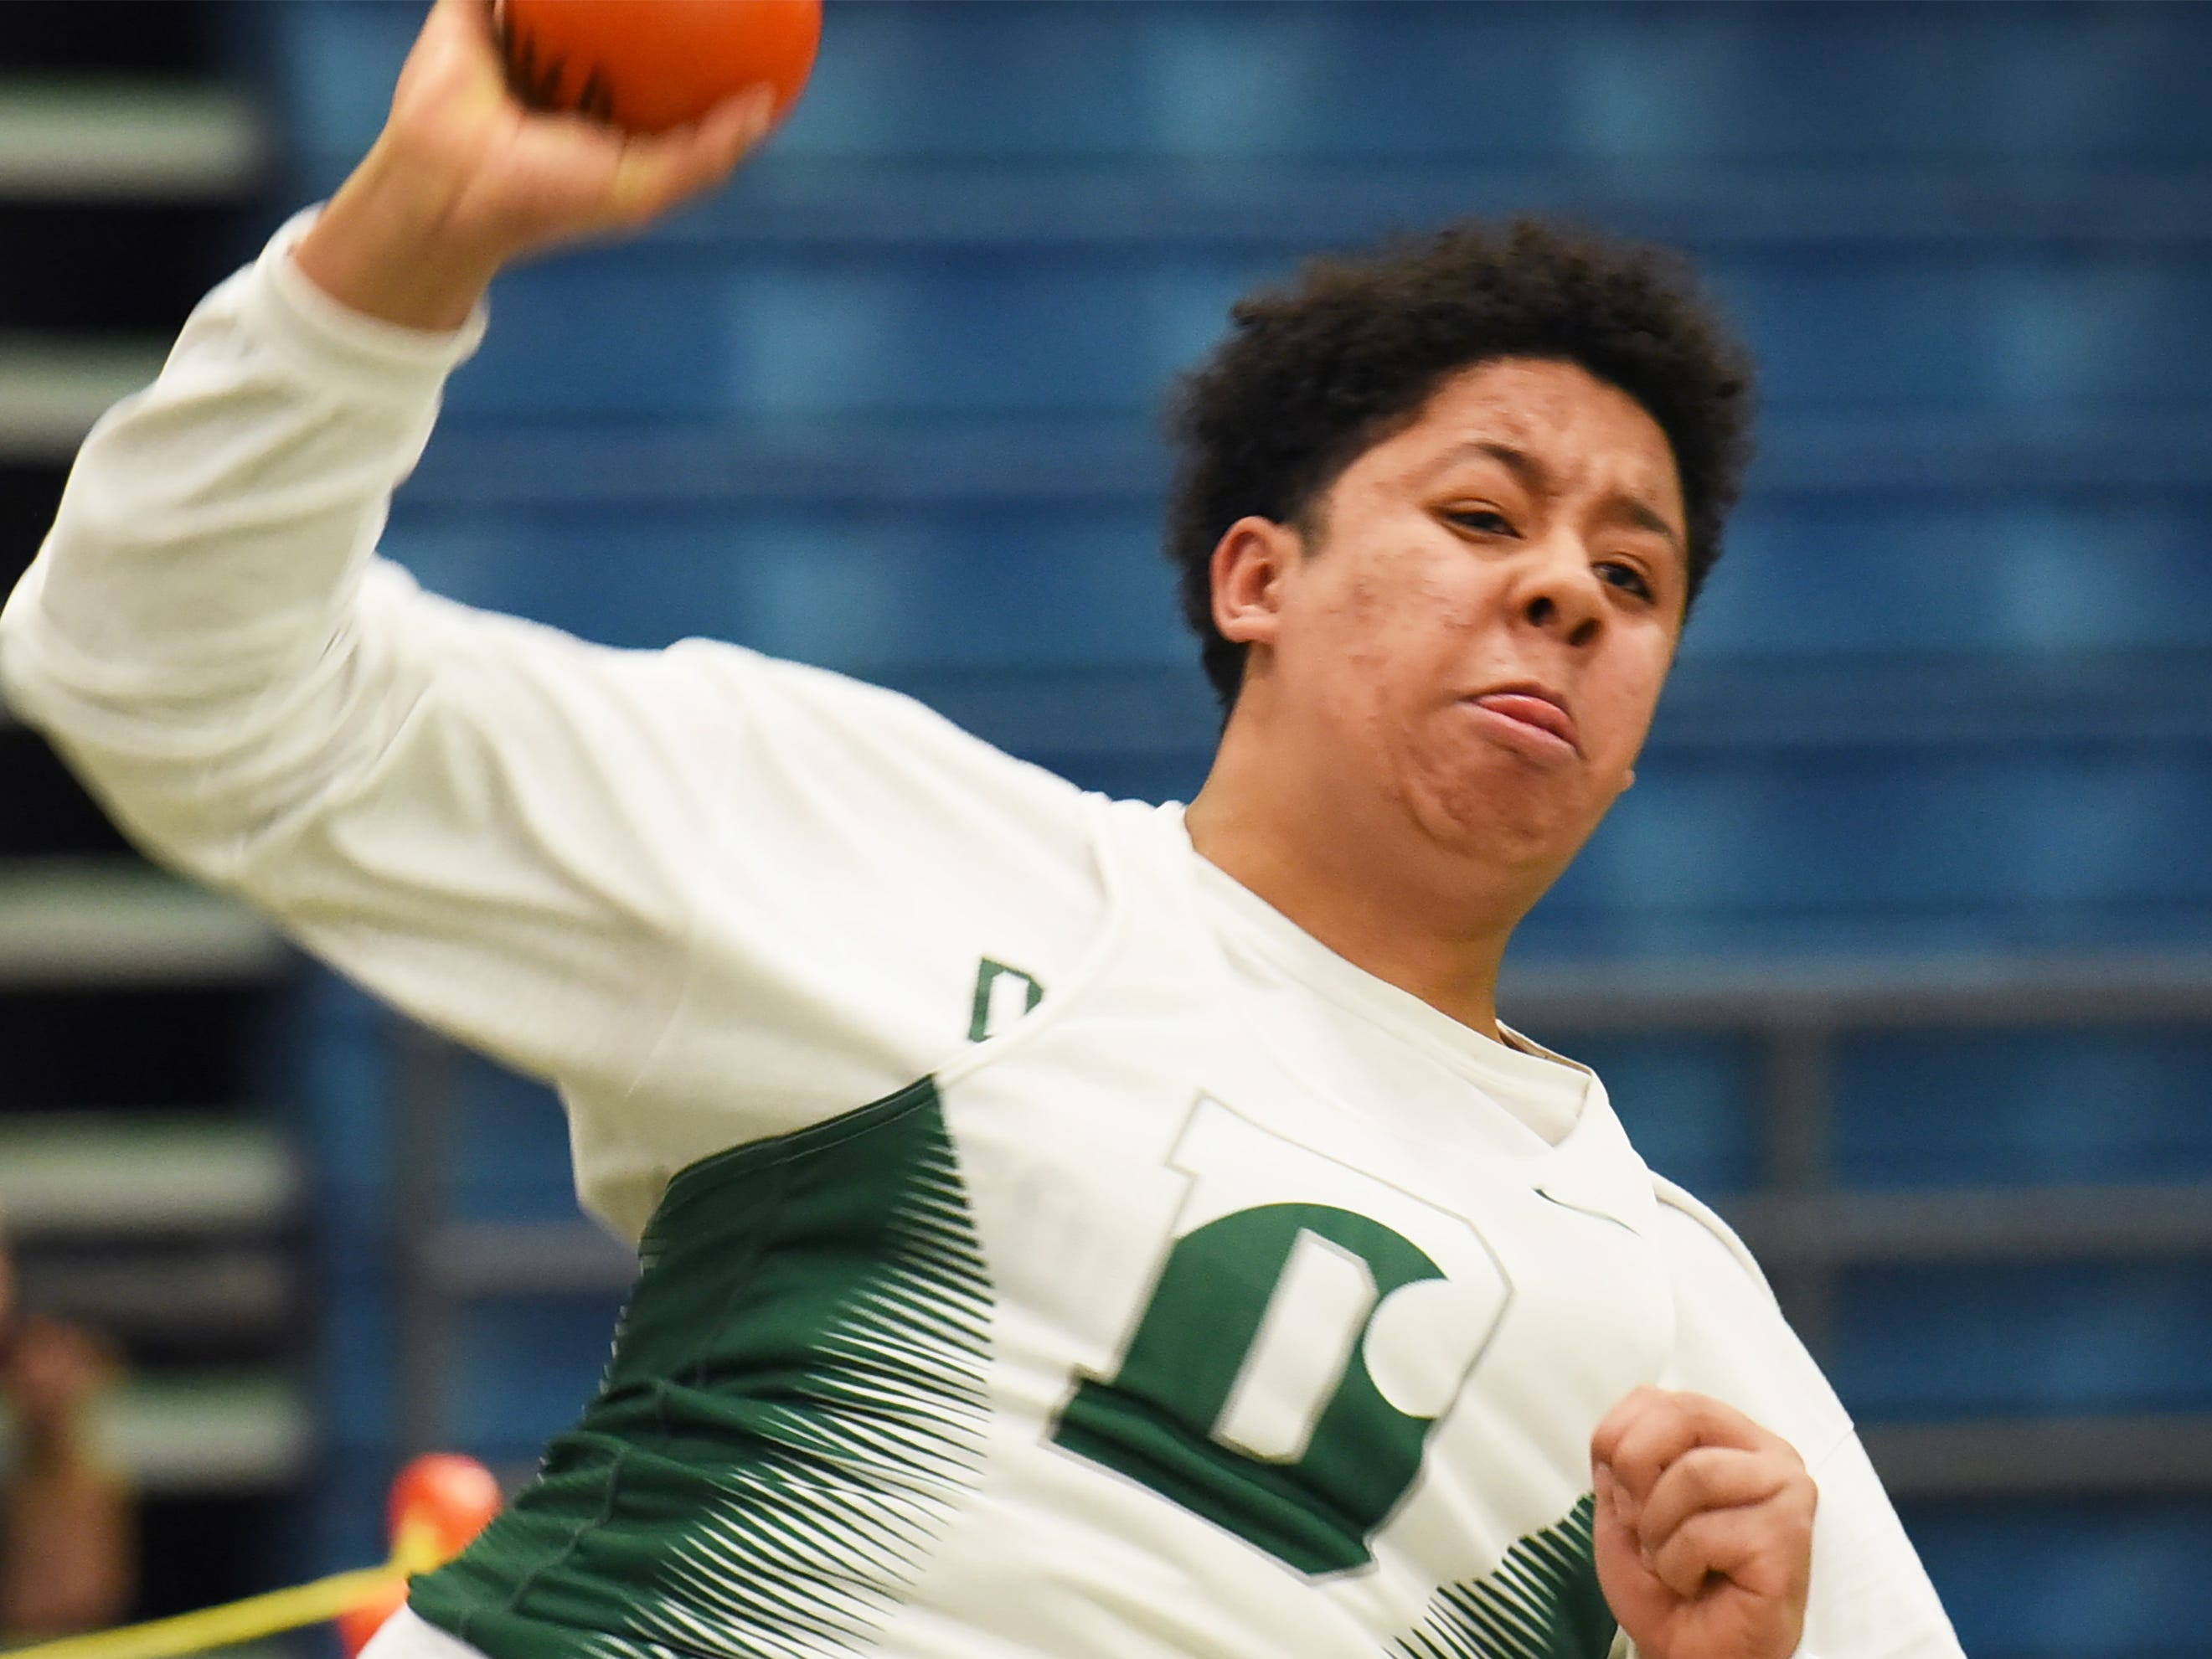 Elijah Hills of Delbarton competes in the shot put at Morris County Relays at Drew University in Madison on 01/09/19.